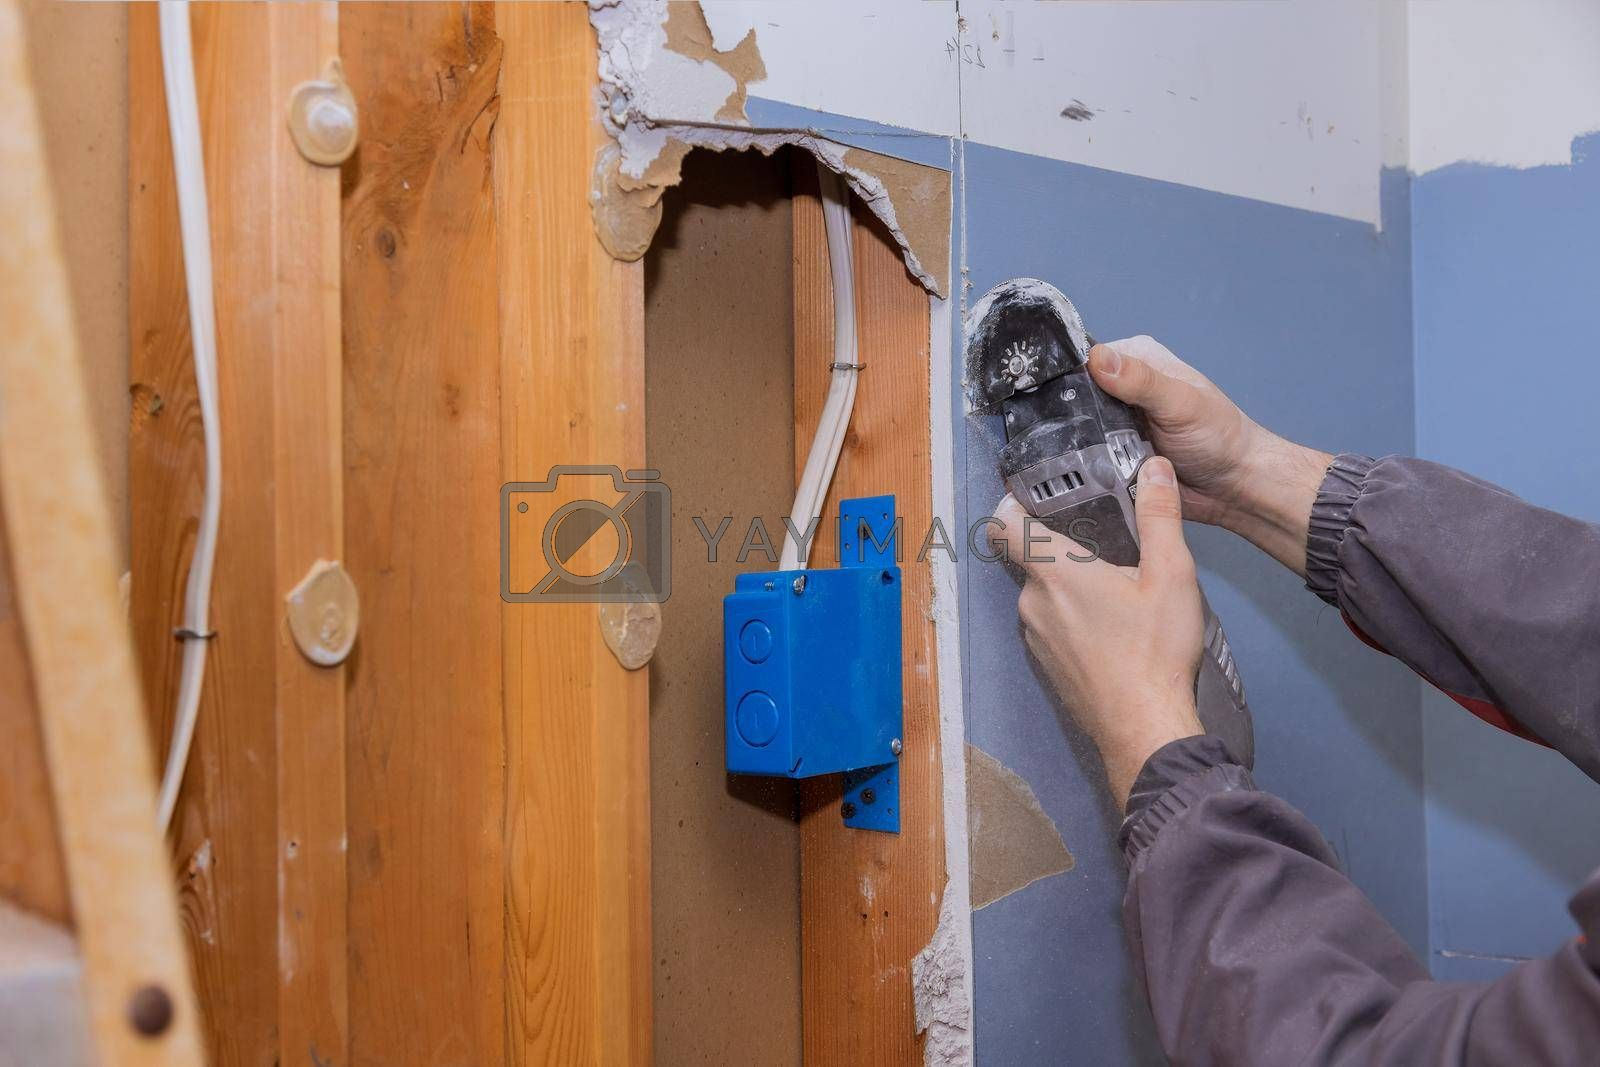 Home renovation service repair works of replacement damaged drywall on worker cutting plasterboard with construction electric power tools